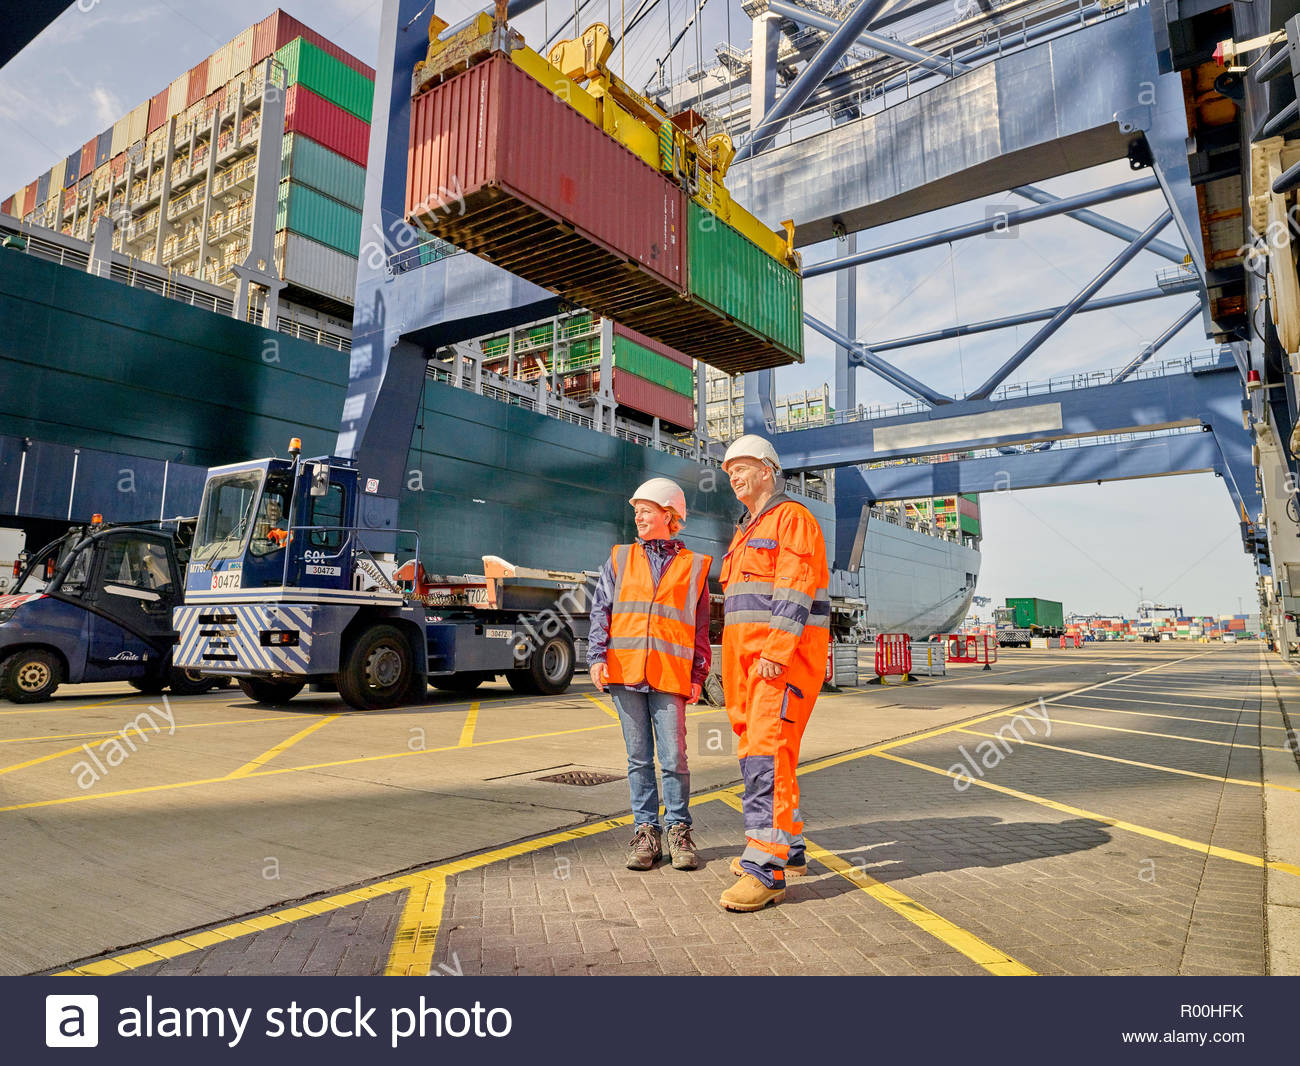 Dock workers by crane lowering cargo container onto truck Stock Photo